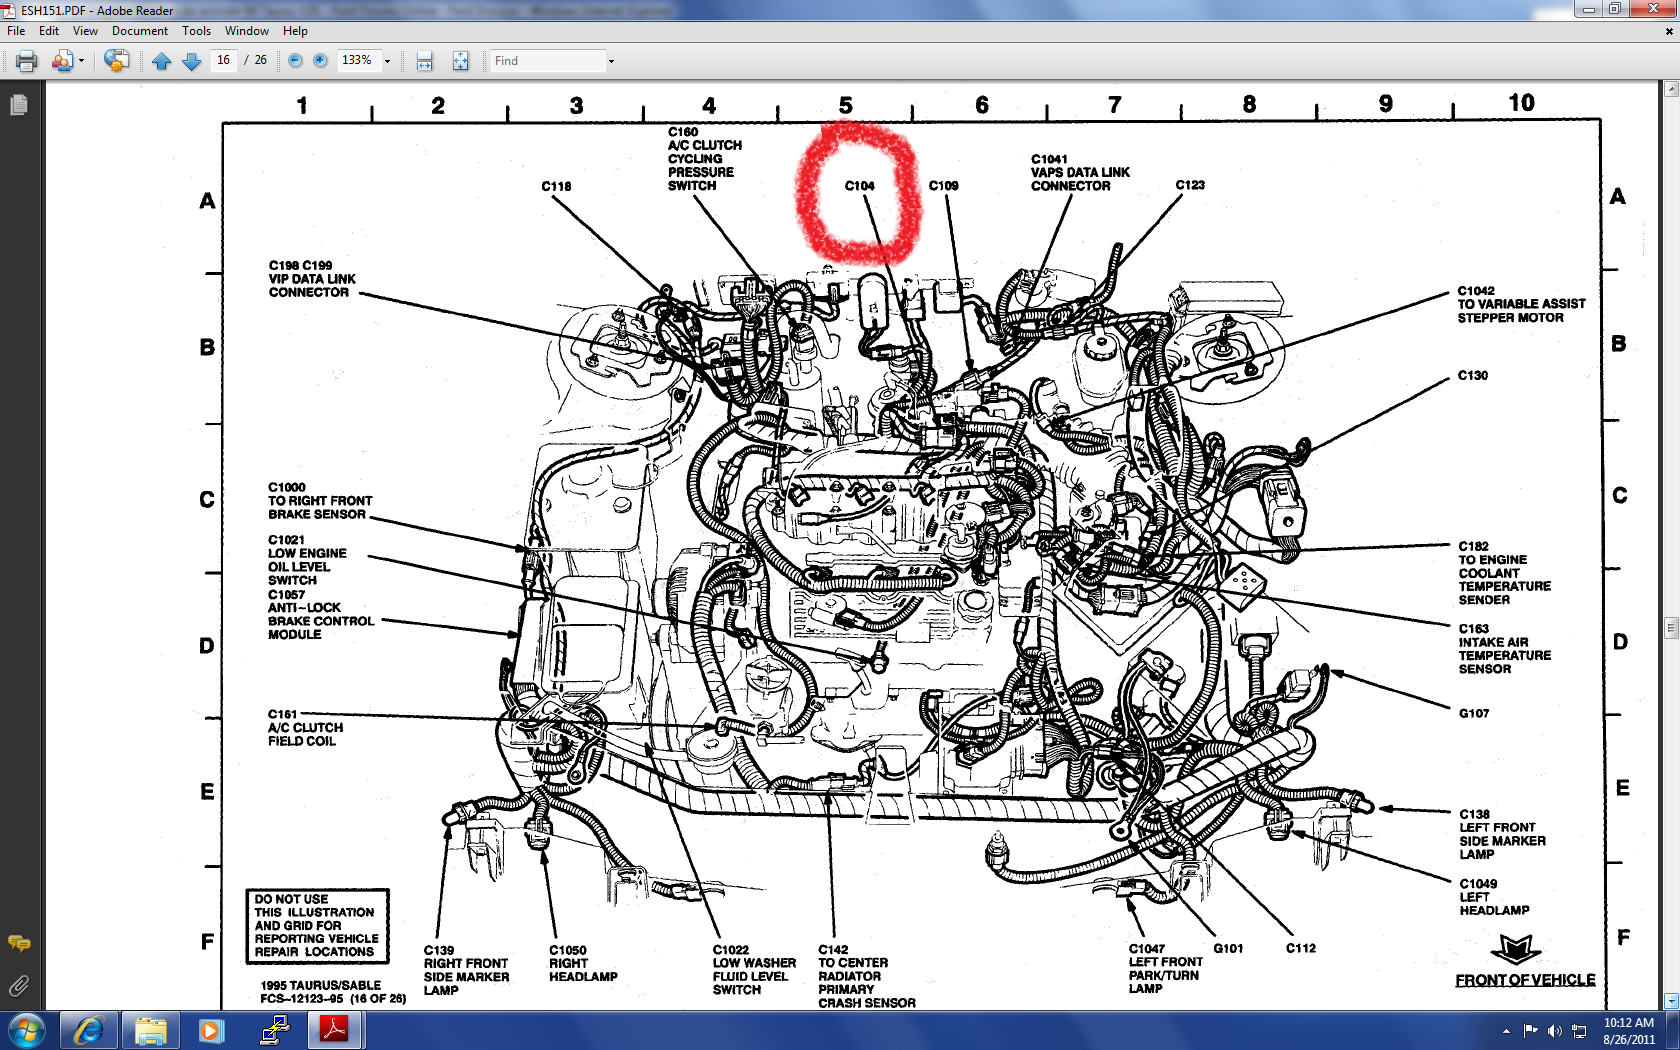 radiator cooling fan fails to auto activate 94 taurus 3 0l 1994 ford taurus wiring diagram at gsmx.co